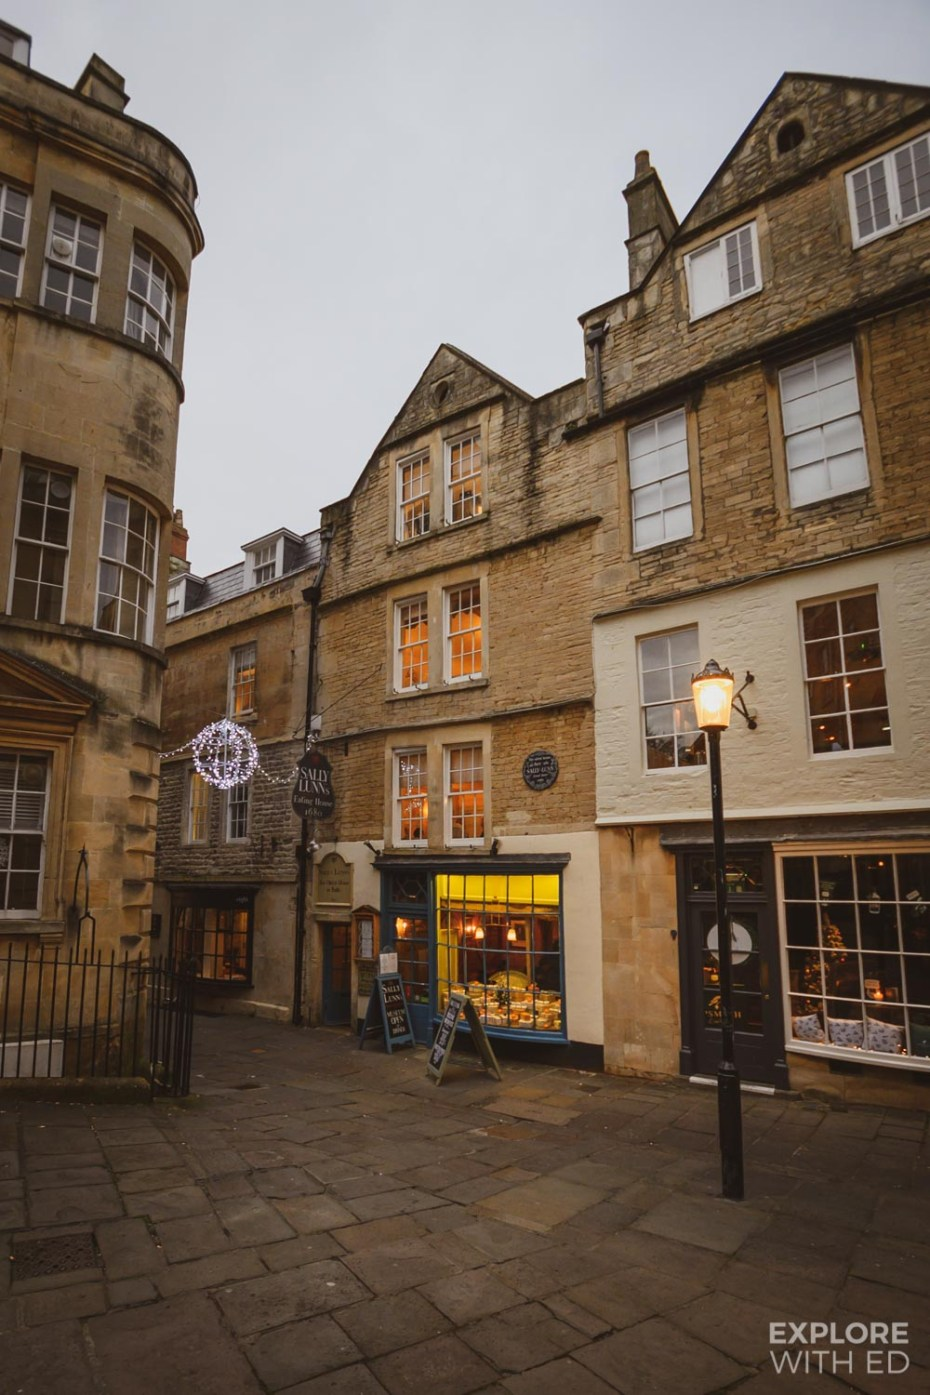 Sally Lunn's eating house in Bath, the oldest house in the city